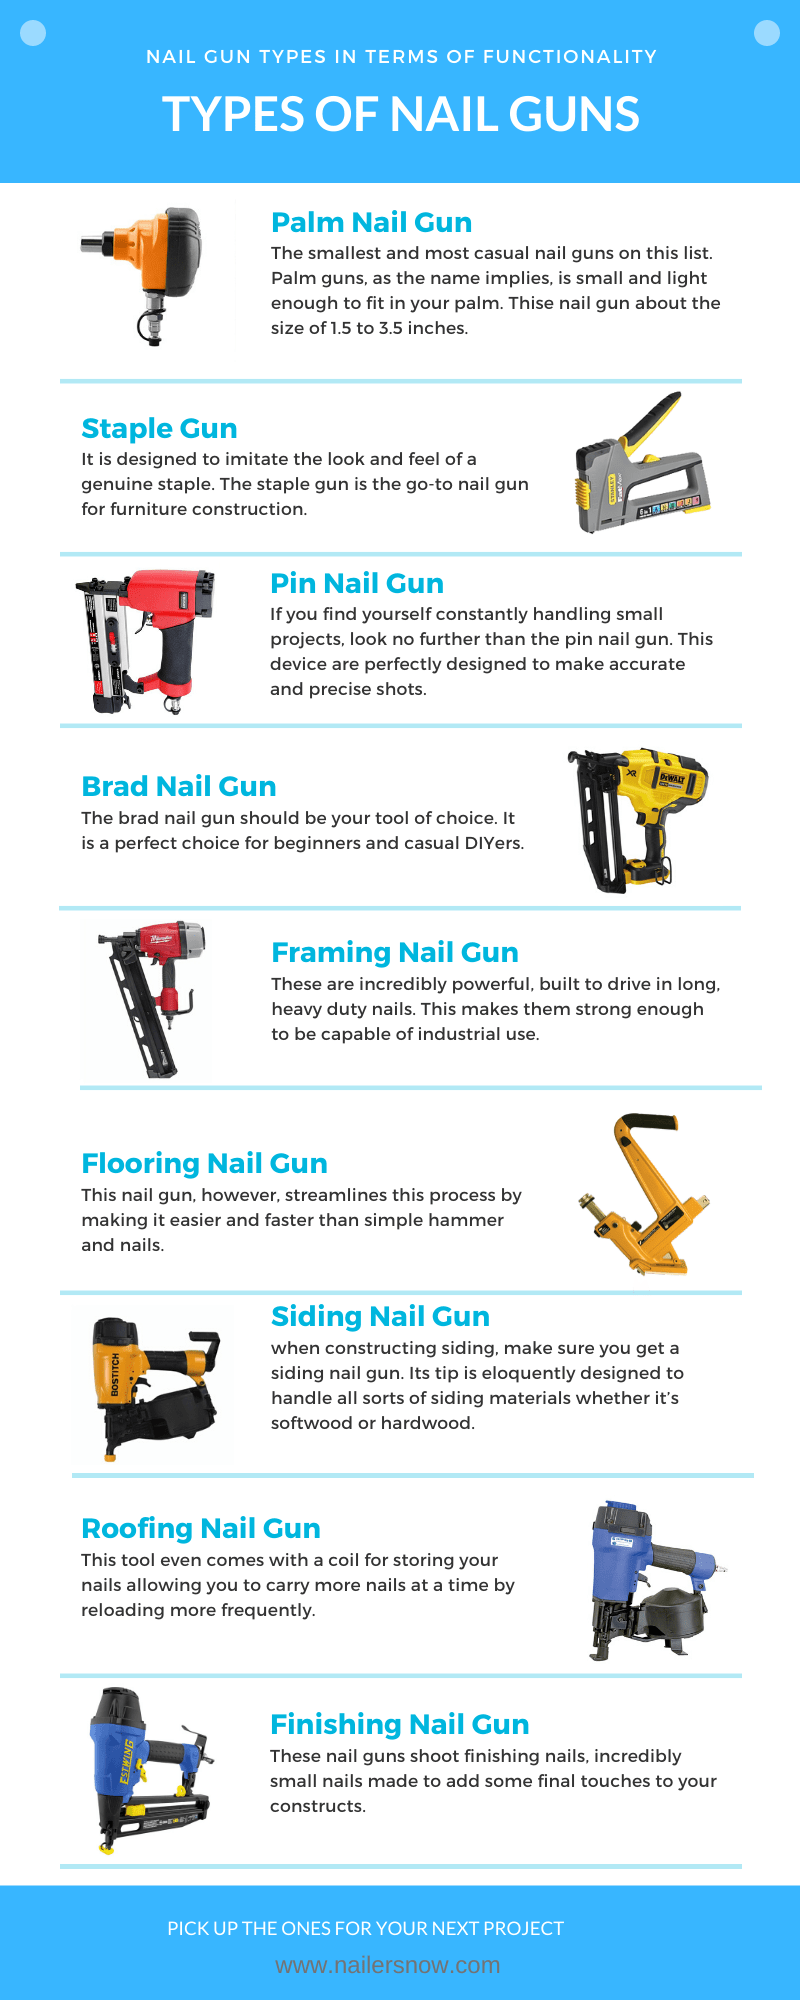 Typs of nail guns Infographic